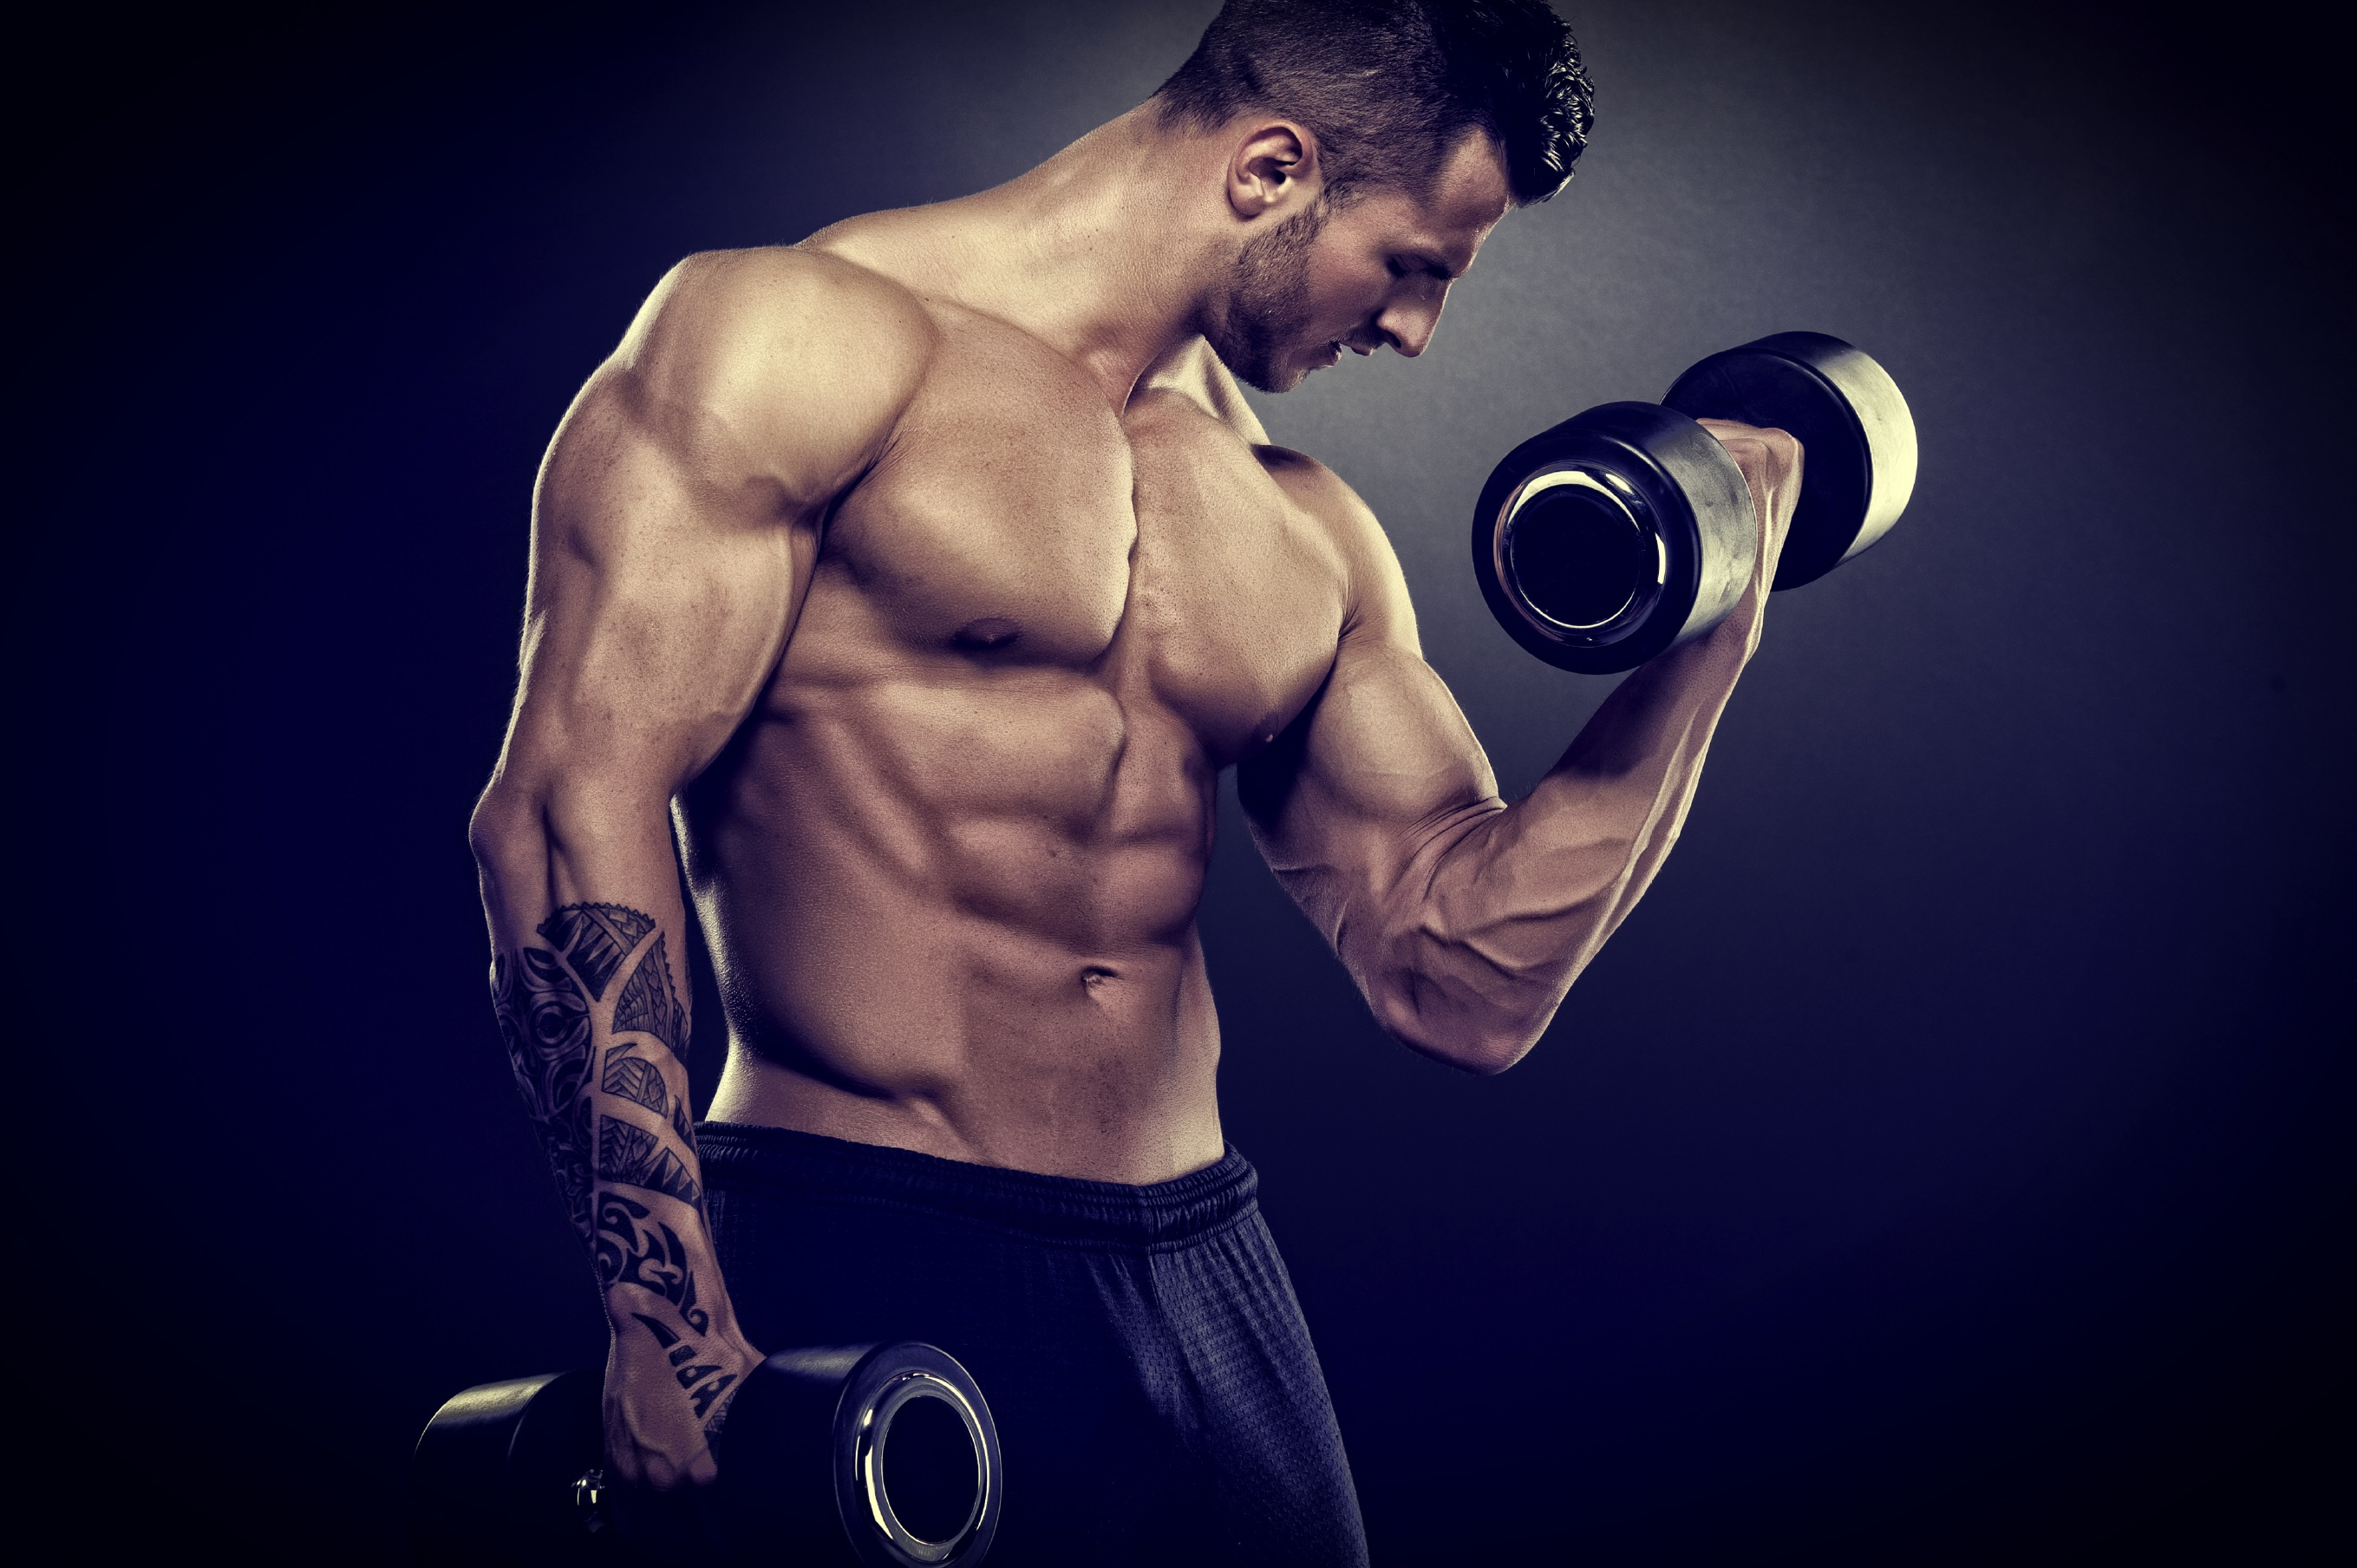 Buy Steroids Uk Online - The Natural Health spirit